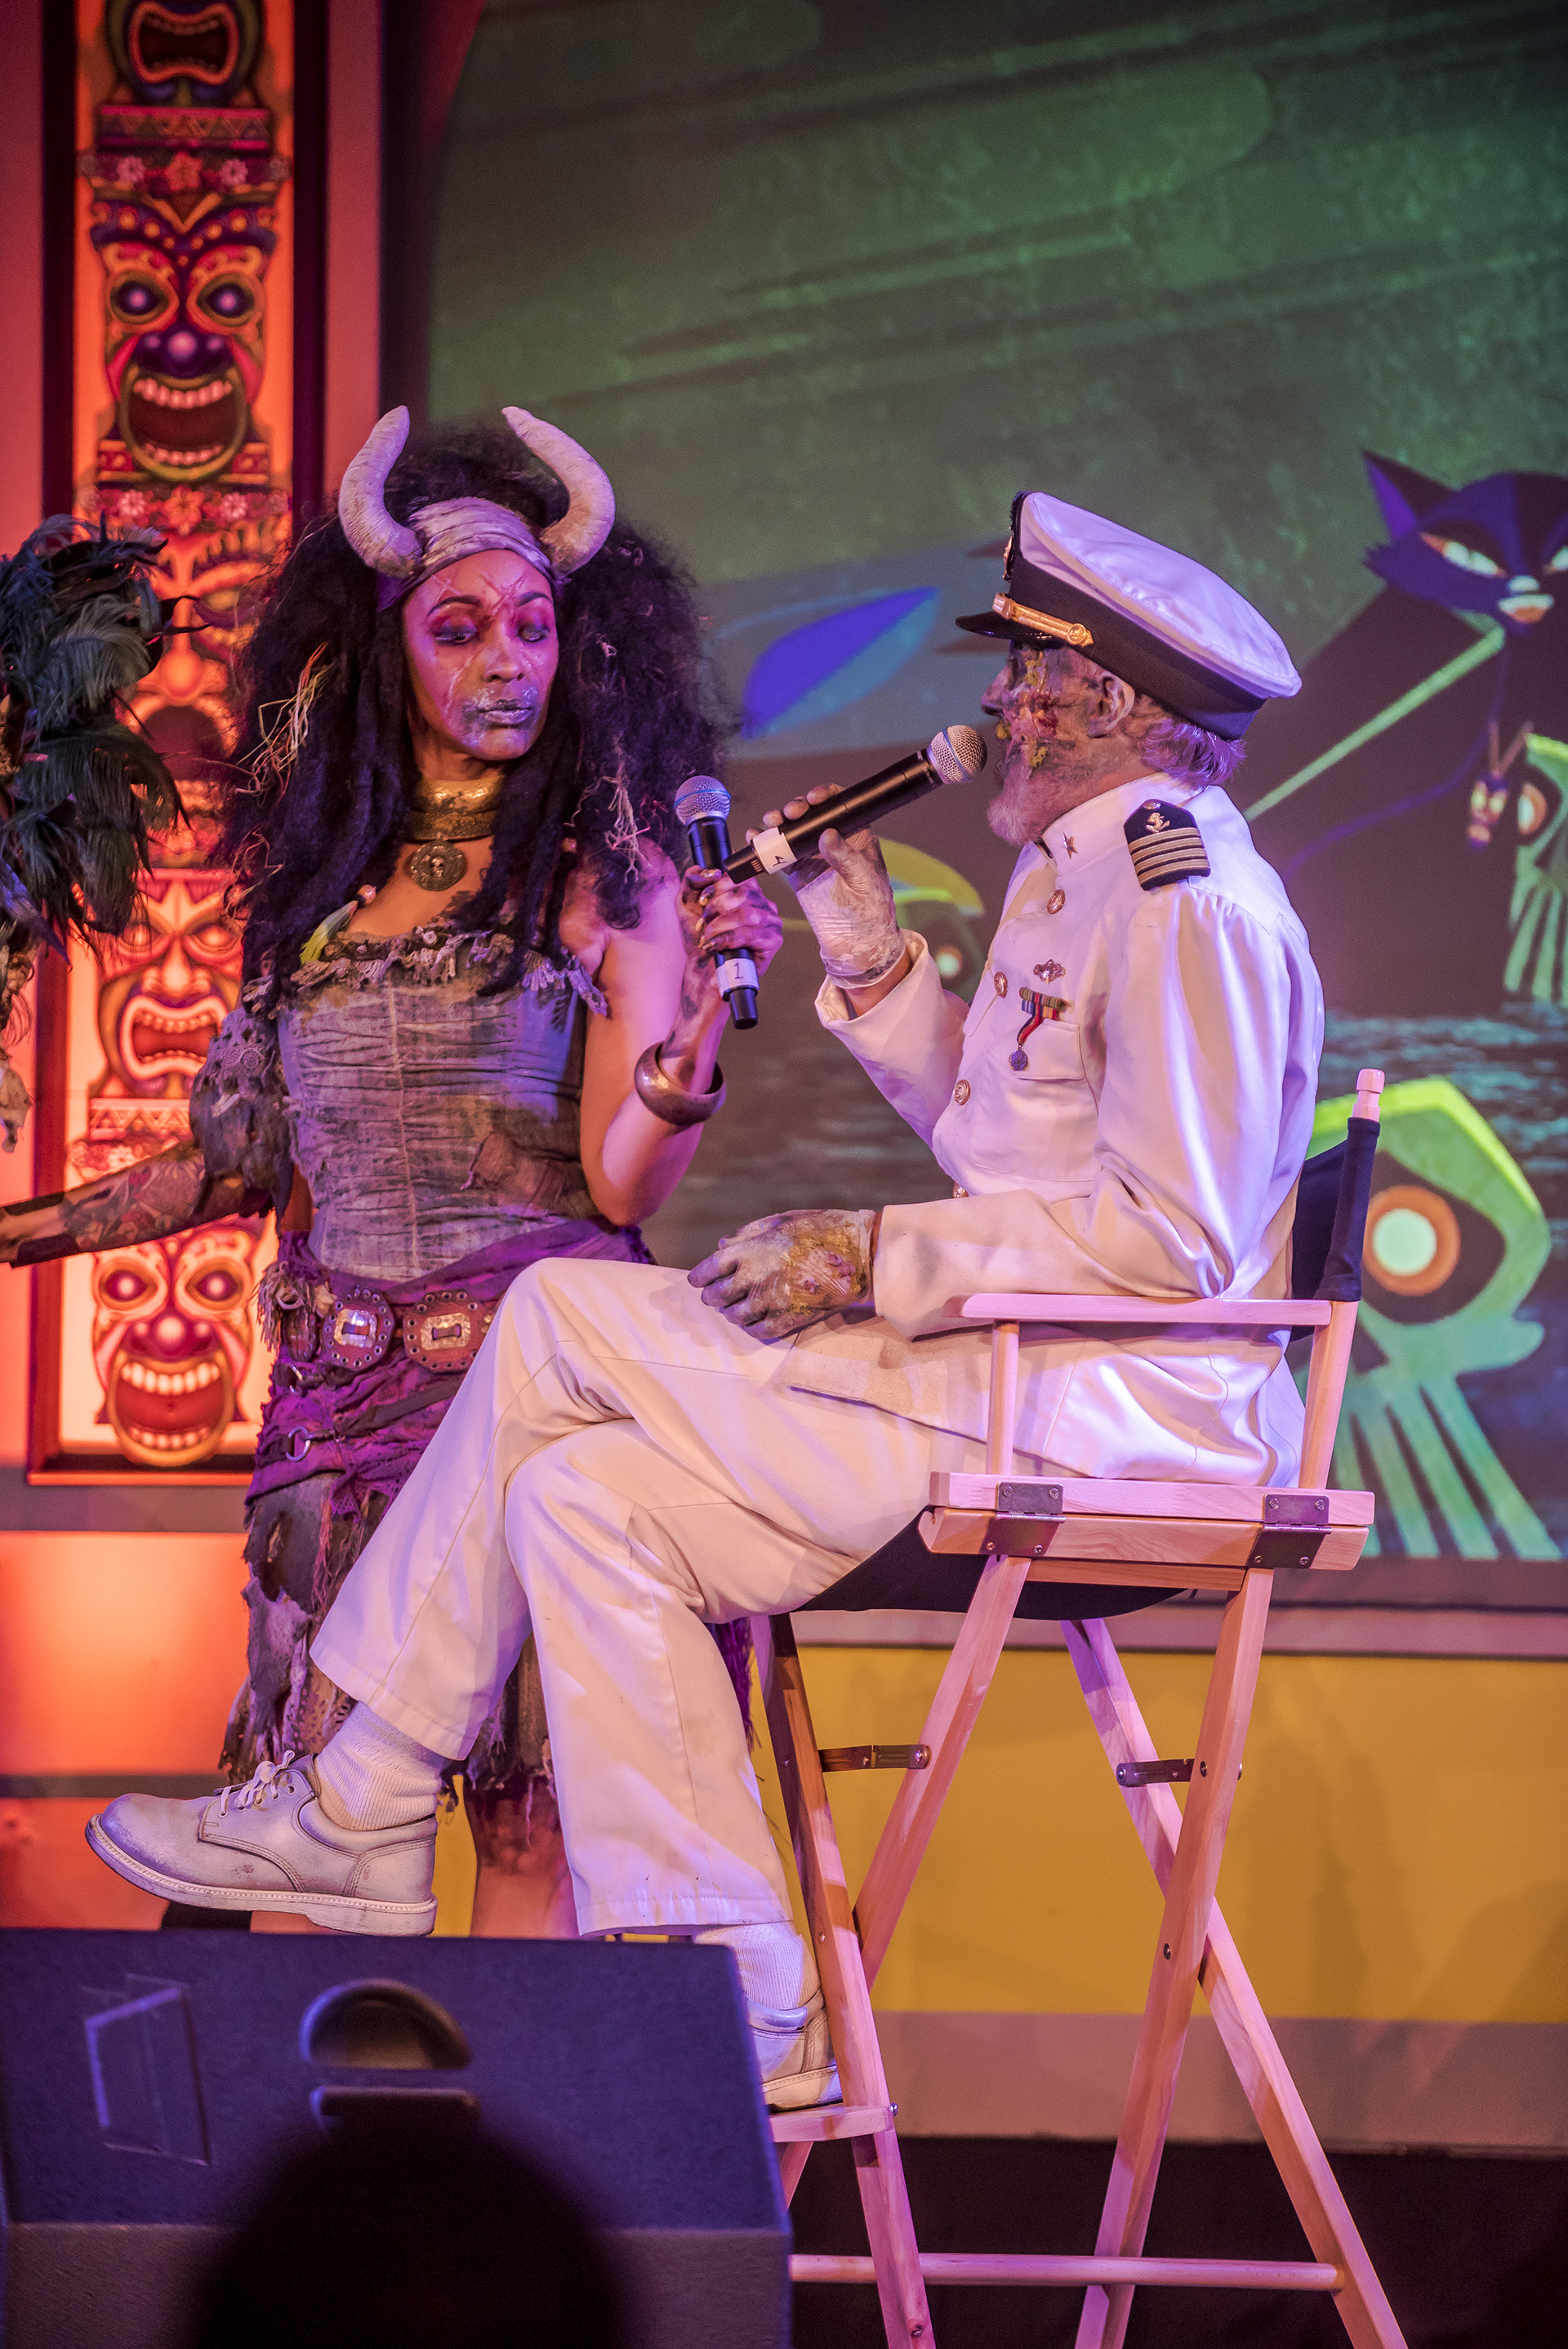 The Voodoo Priestess, aka Mambo Cécile, gave the Captain an offer that he may or may not refuse.